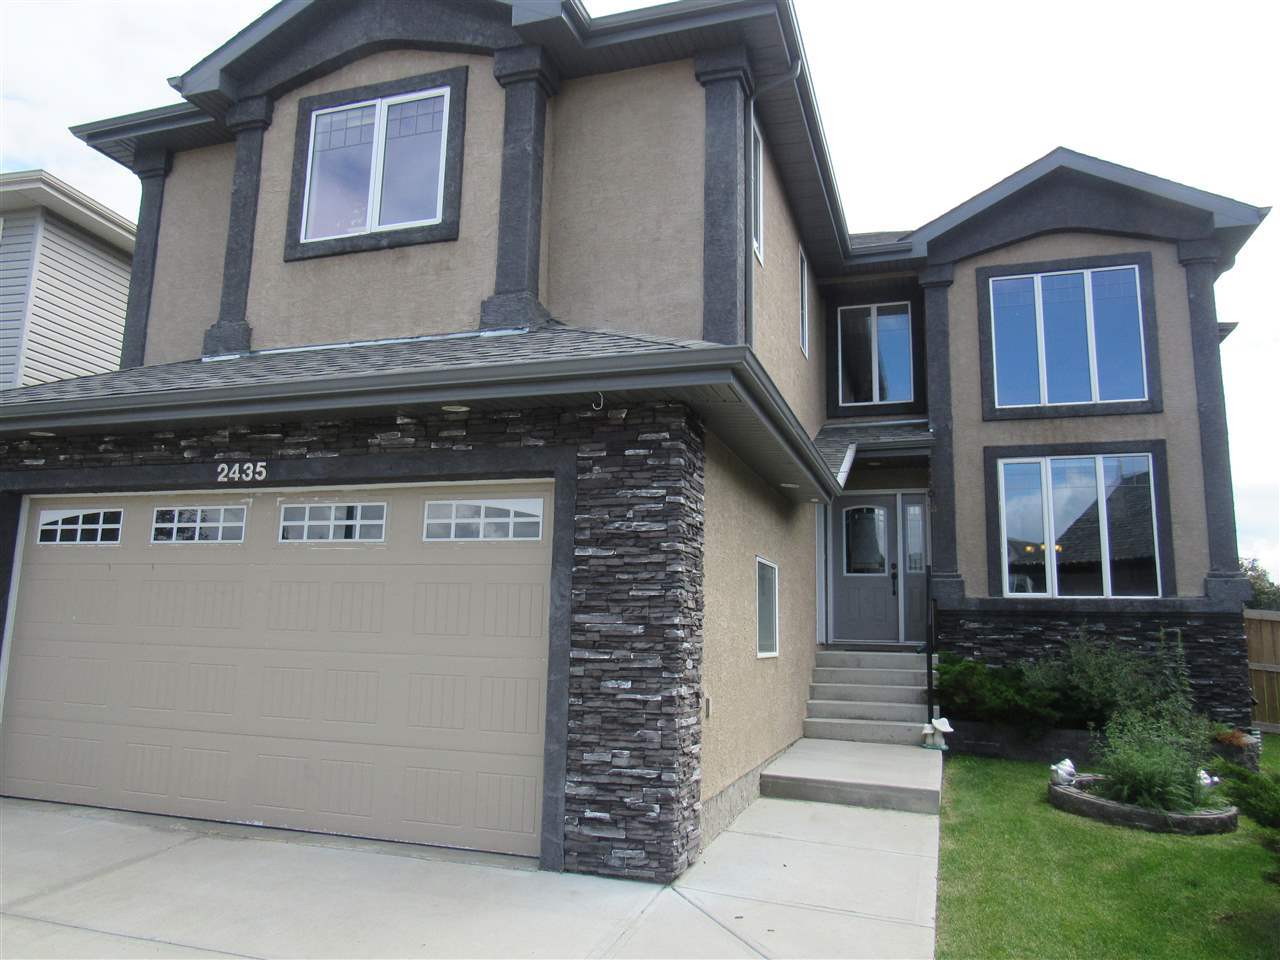 MLS® listing #E4165714 for sale located at 2435 HAGEN Way